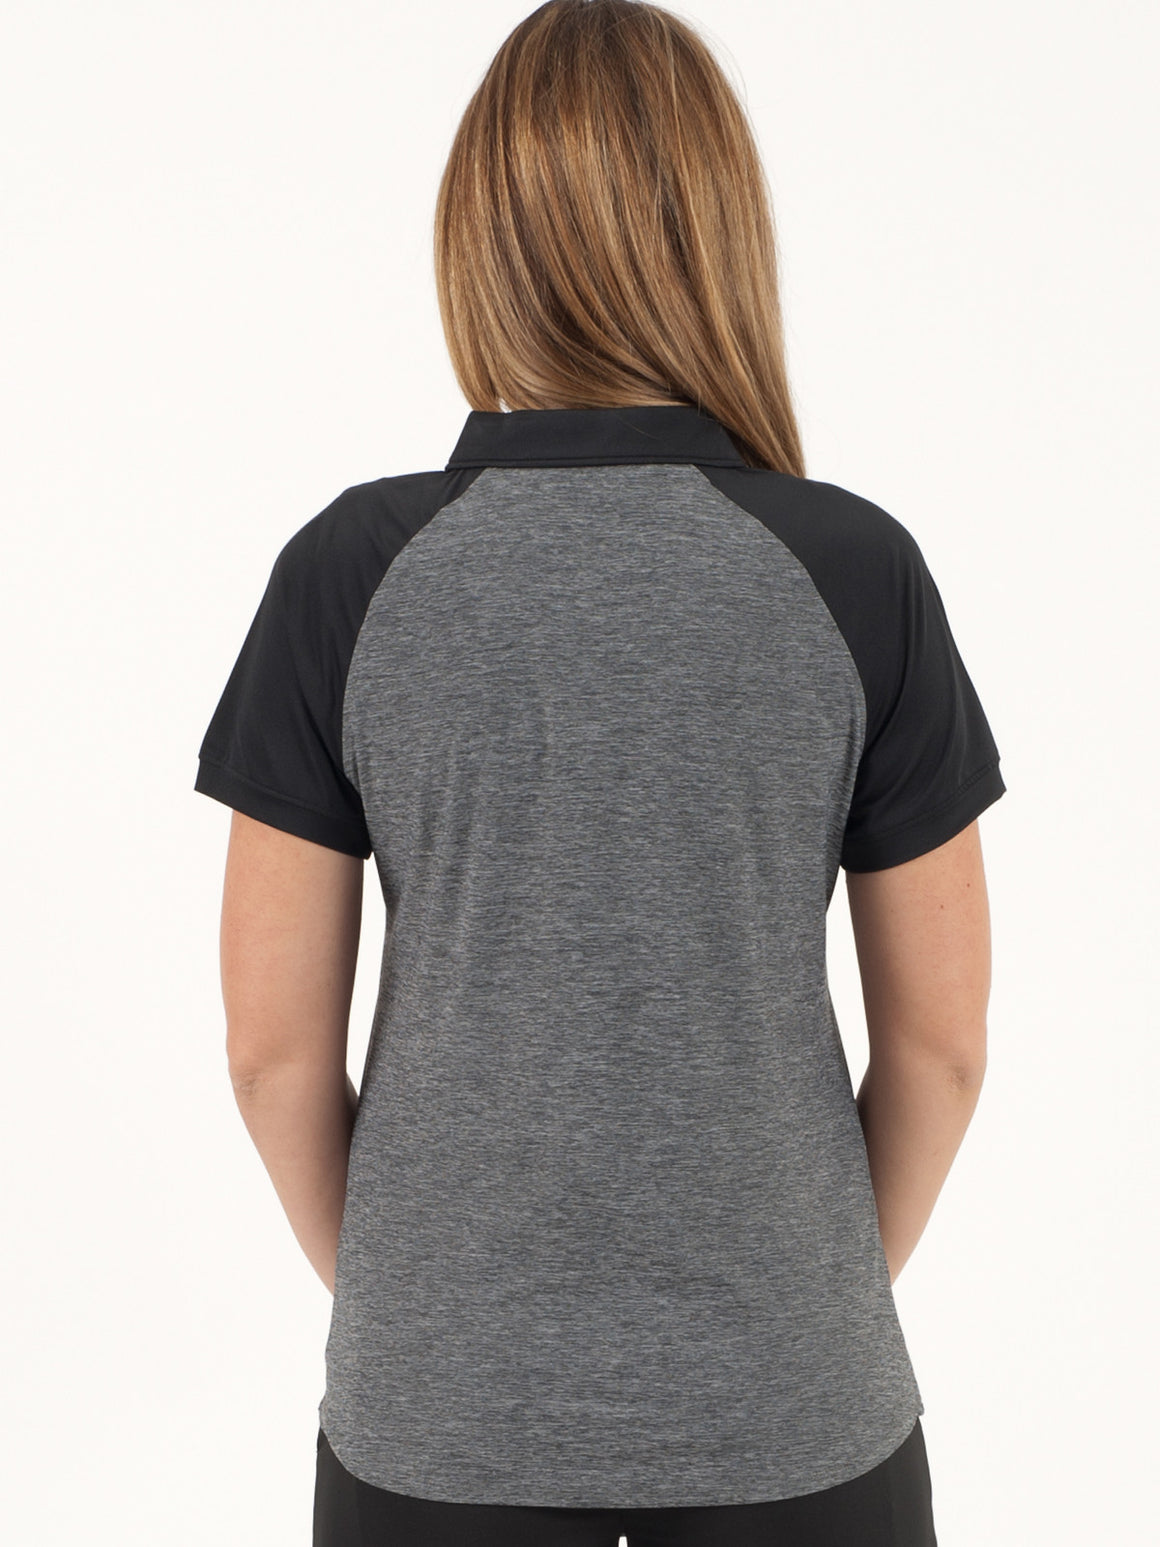 Allison - Charcoal Hea (Black)